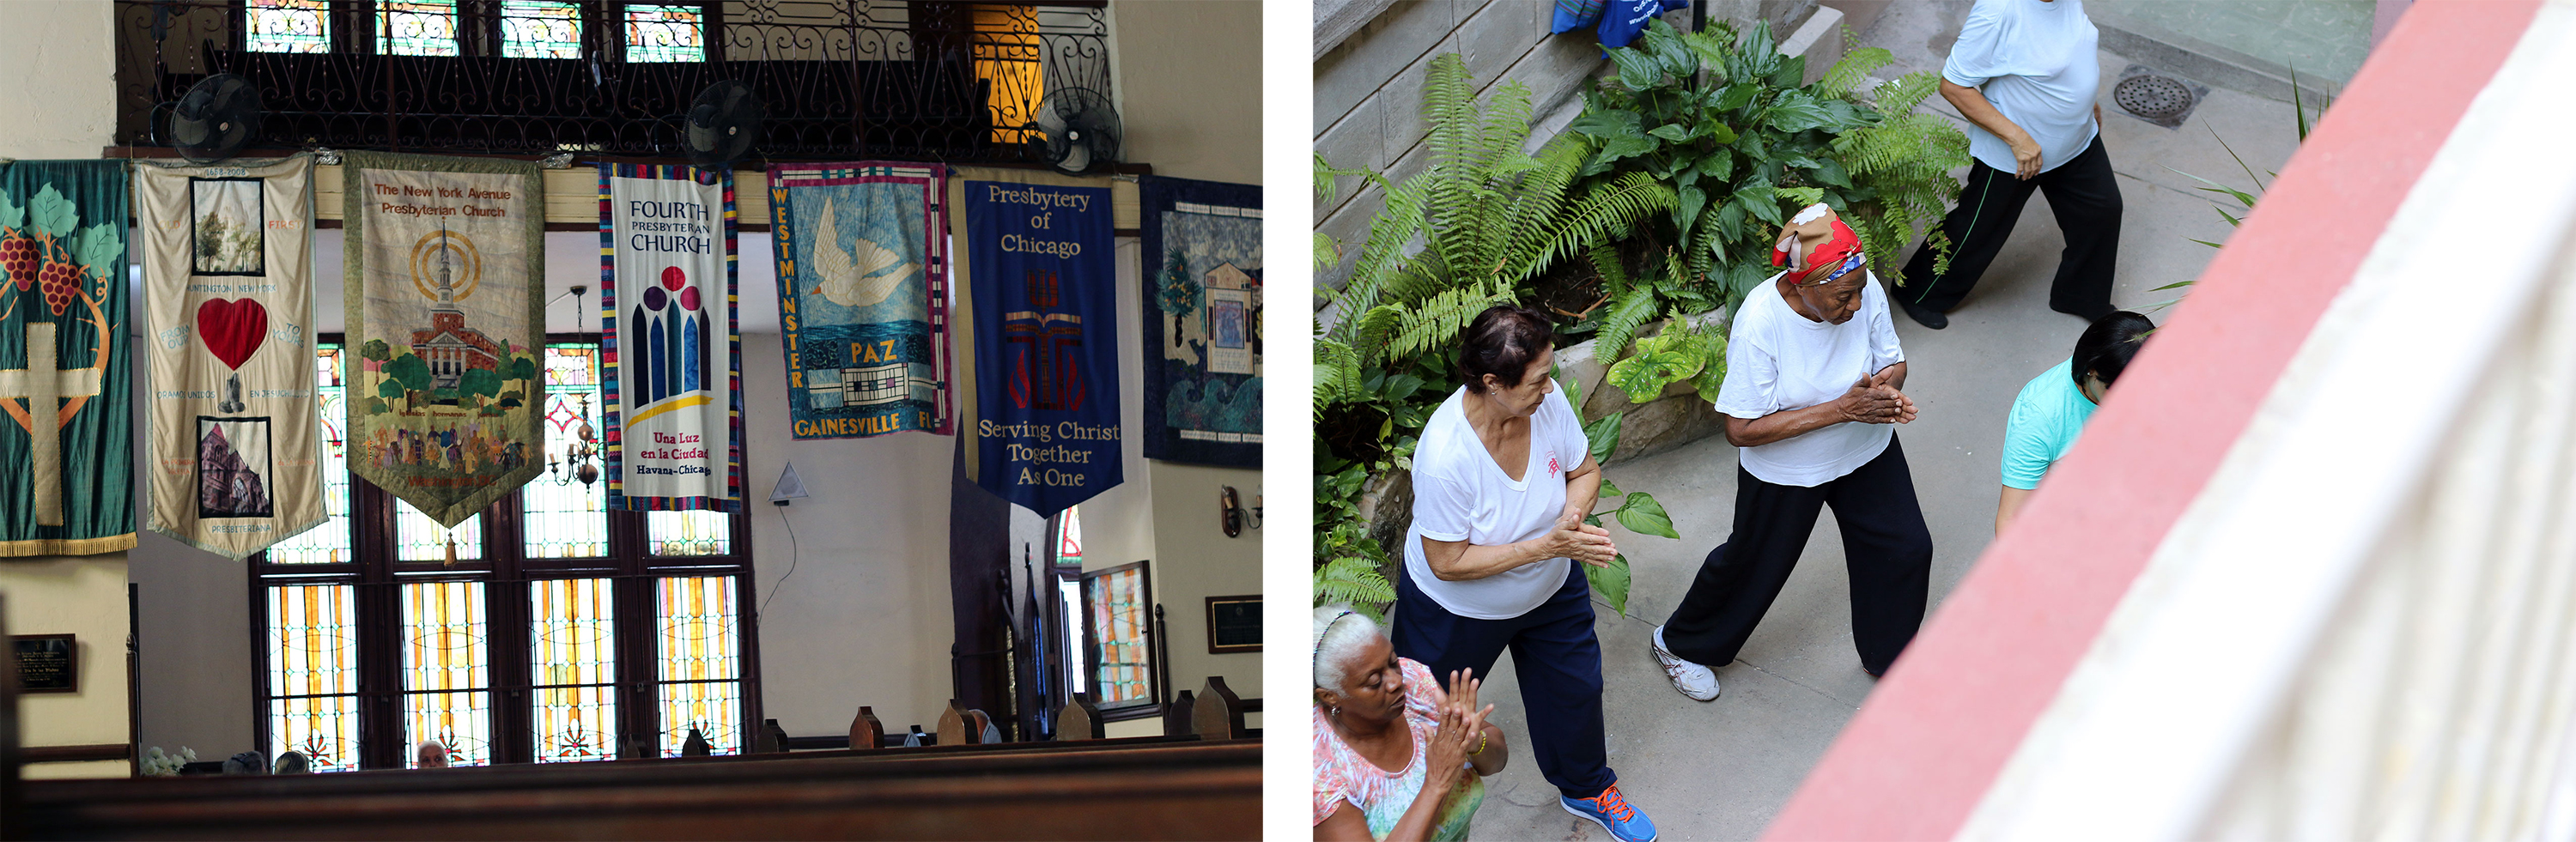 Left: Banners of partner churches in the United States hang along the rear balcony of the sanctuary. (Photo by Fred Tangeman) | Right: This urban church serves the local community in a myriad of ways including a weekly yoga session. (Photo by Randy Hobson)